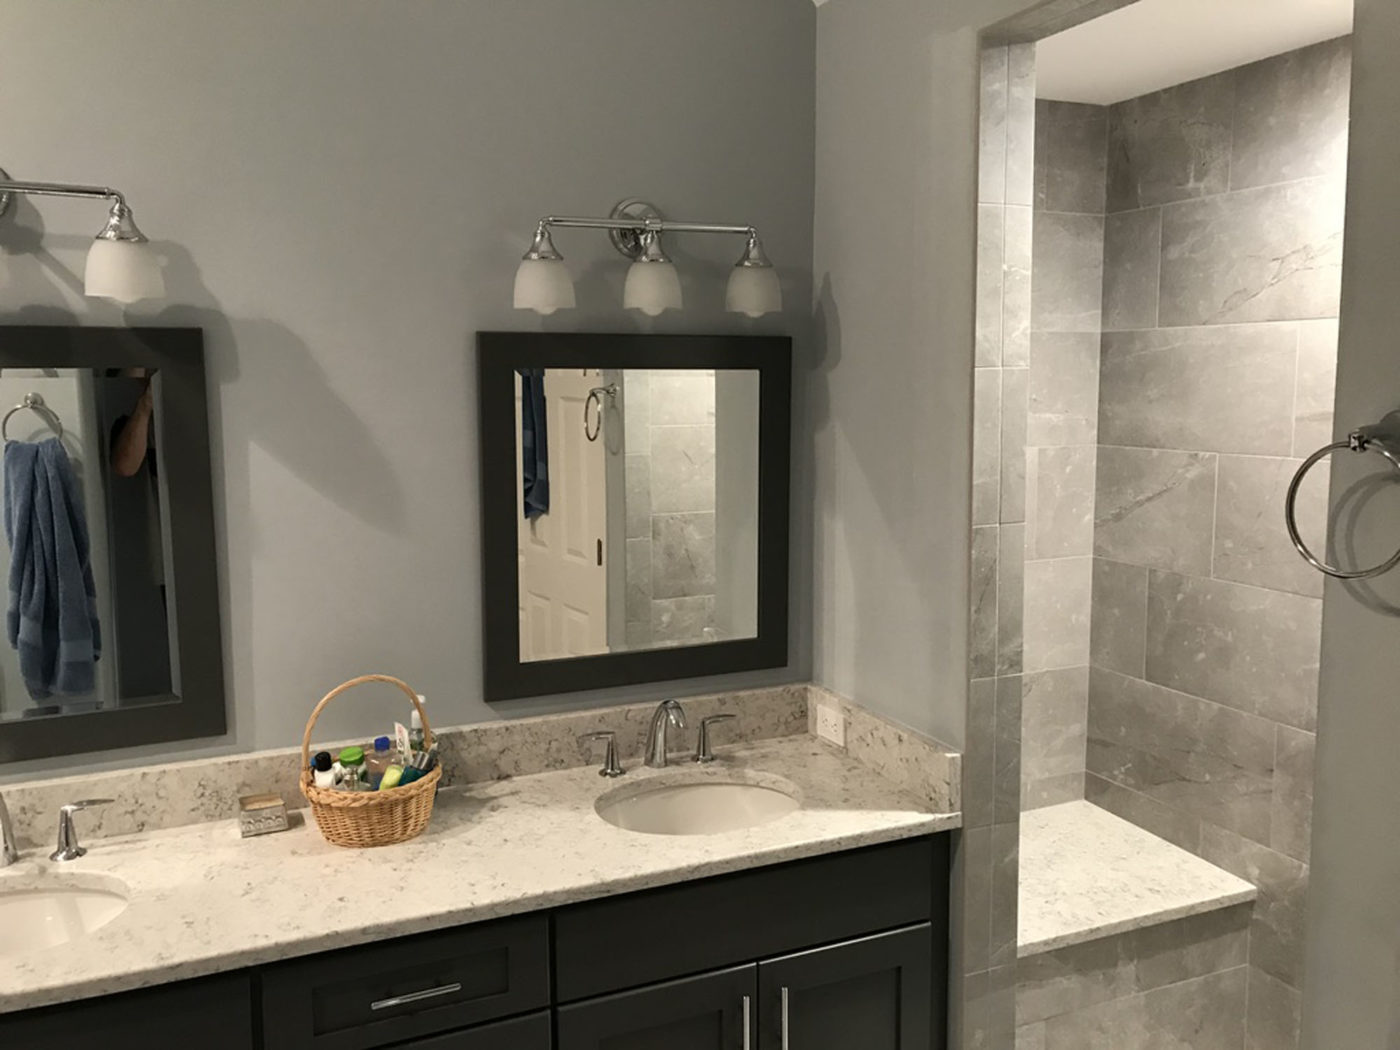 Bathroom Remodeling Services in Schaumburg, near Chicago, shower installation, natural stone tile contractor, new counters